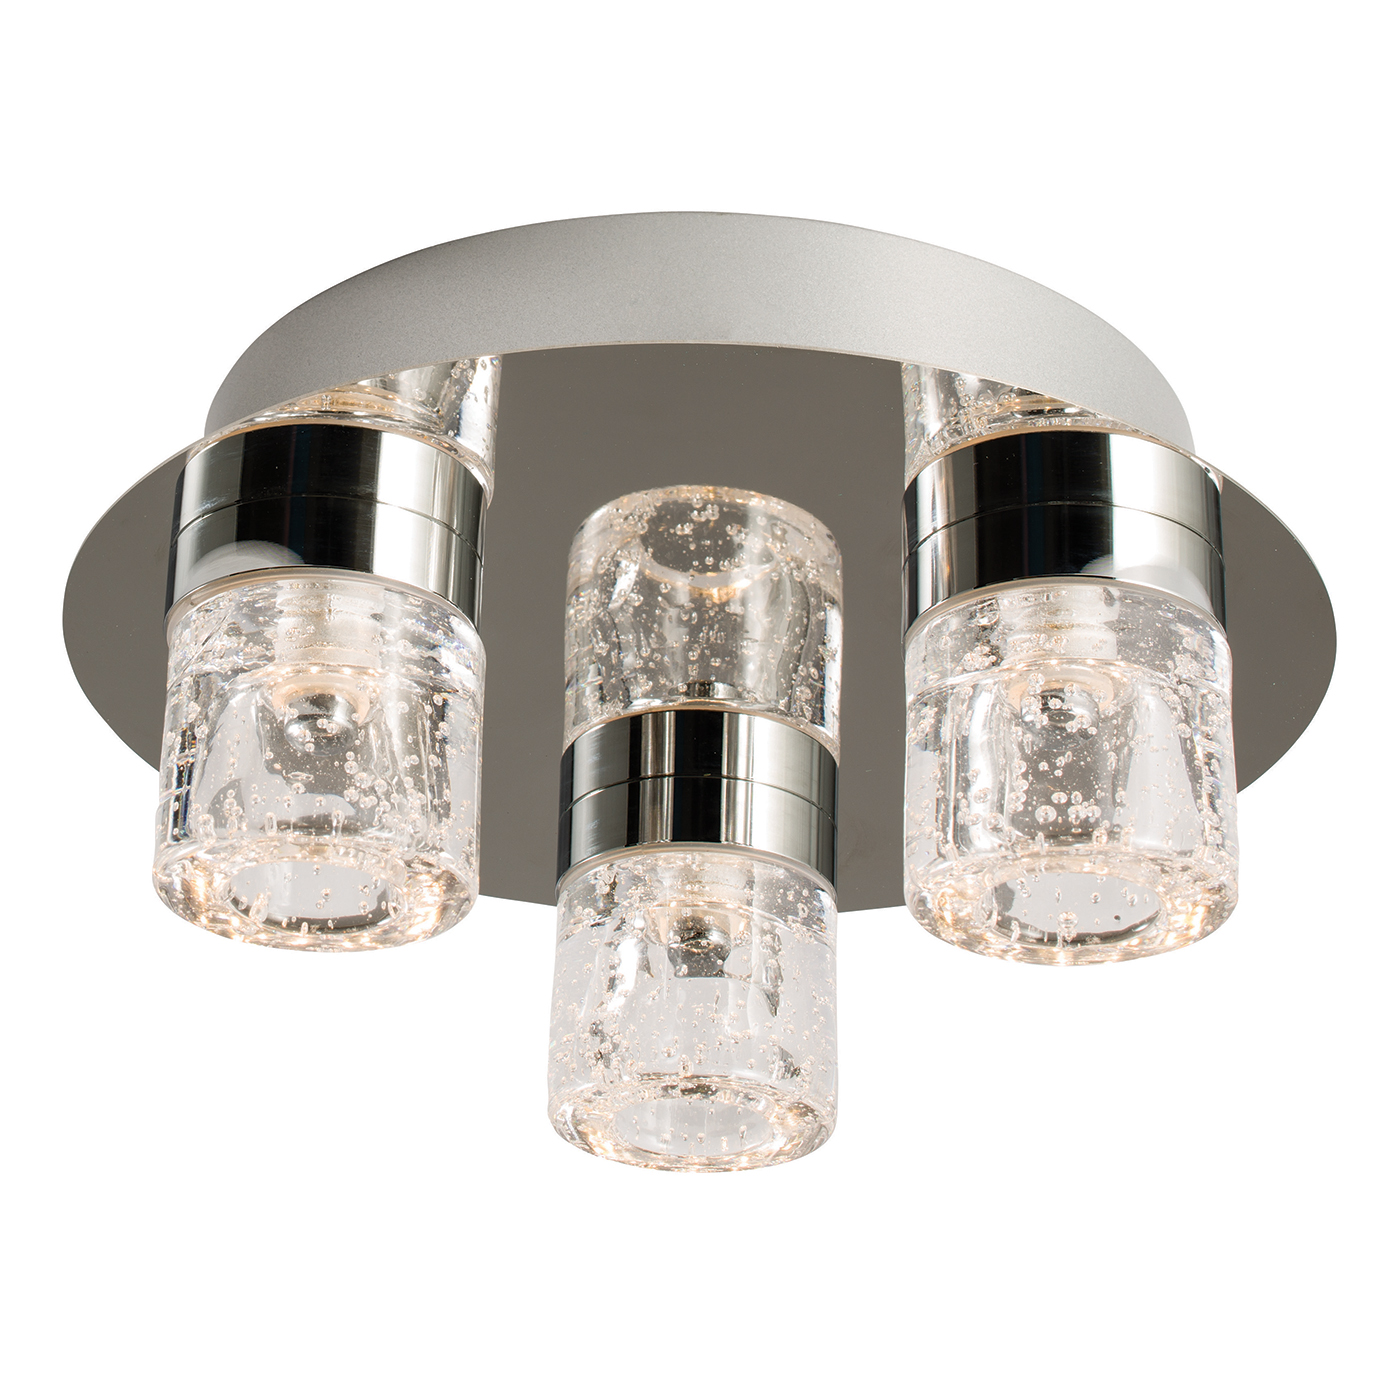 Endon Imperial flush LED bathroom ceiling light IP44 3x 4W chrome glass bubbles Thumbnail 1